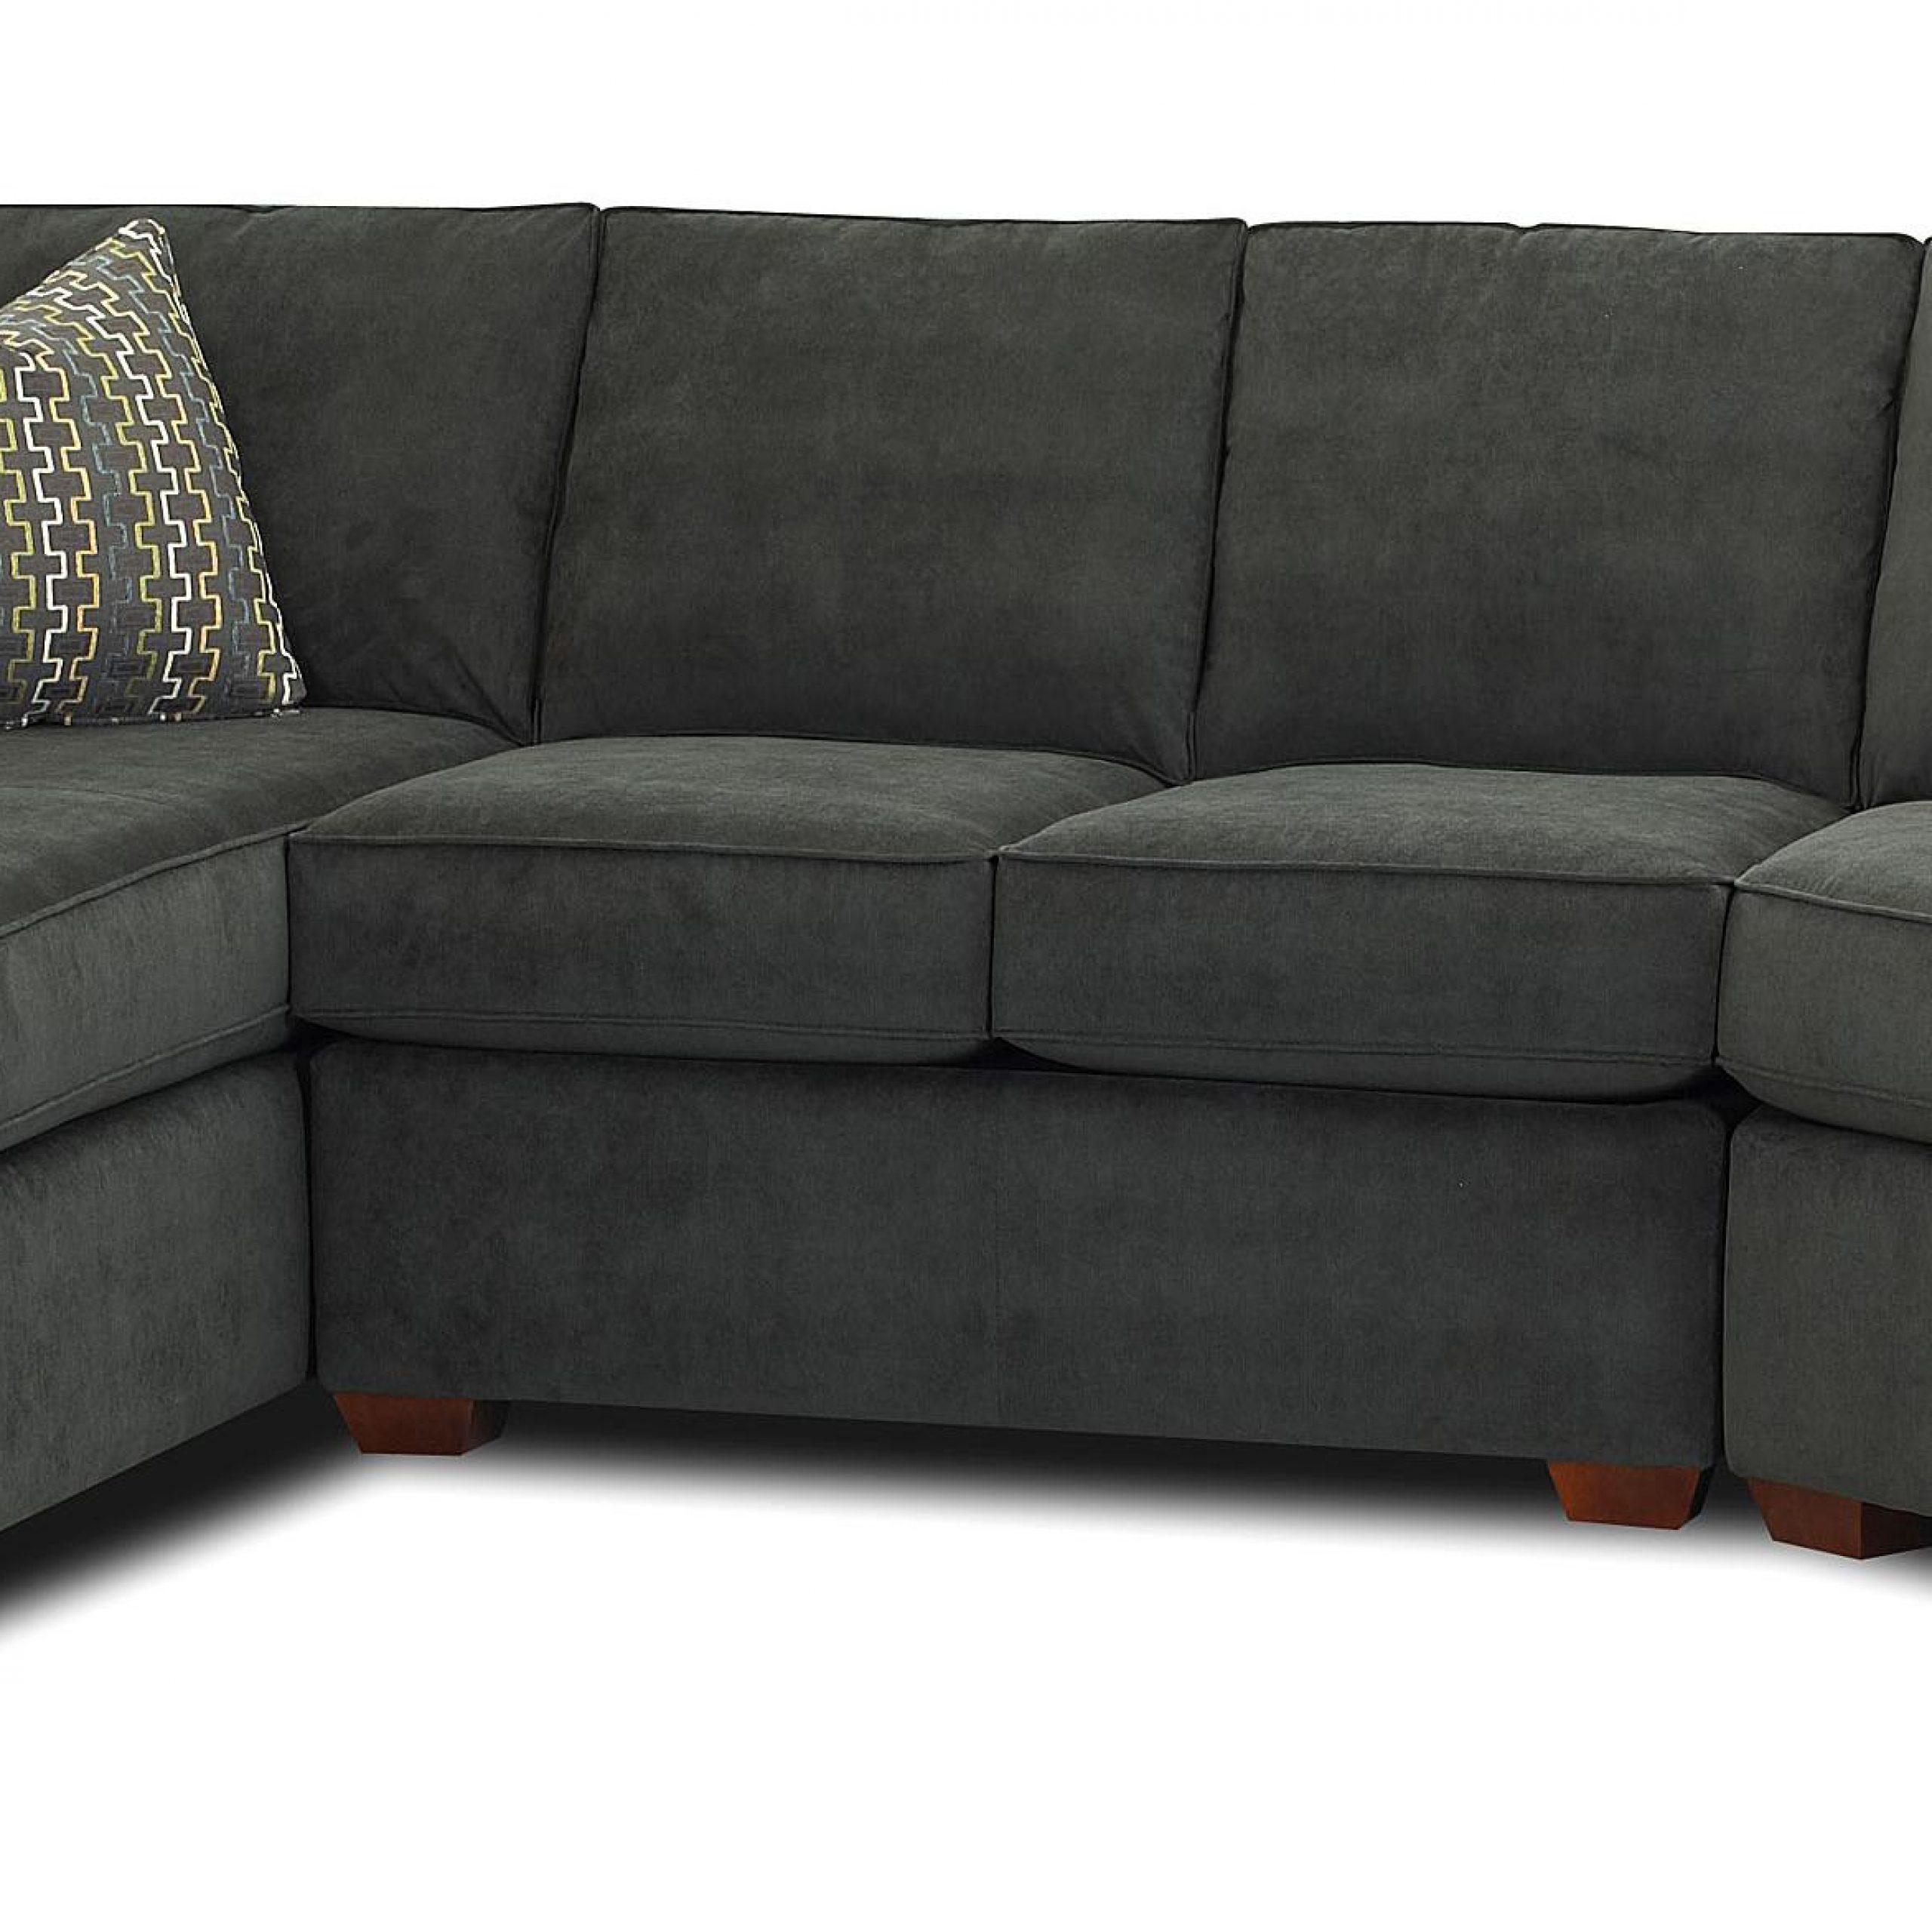 Sectional Sofa With Right Facing Sofa Chaiseklaussner Throughout 2017 Monet Right Facing Sectional Sofas (View 23 of 25)